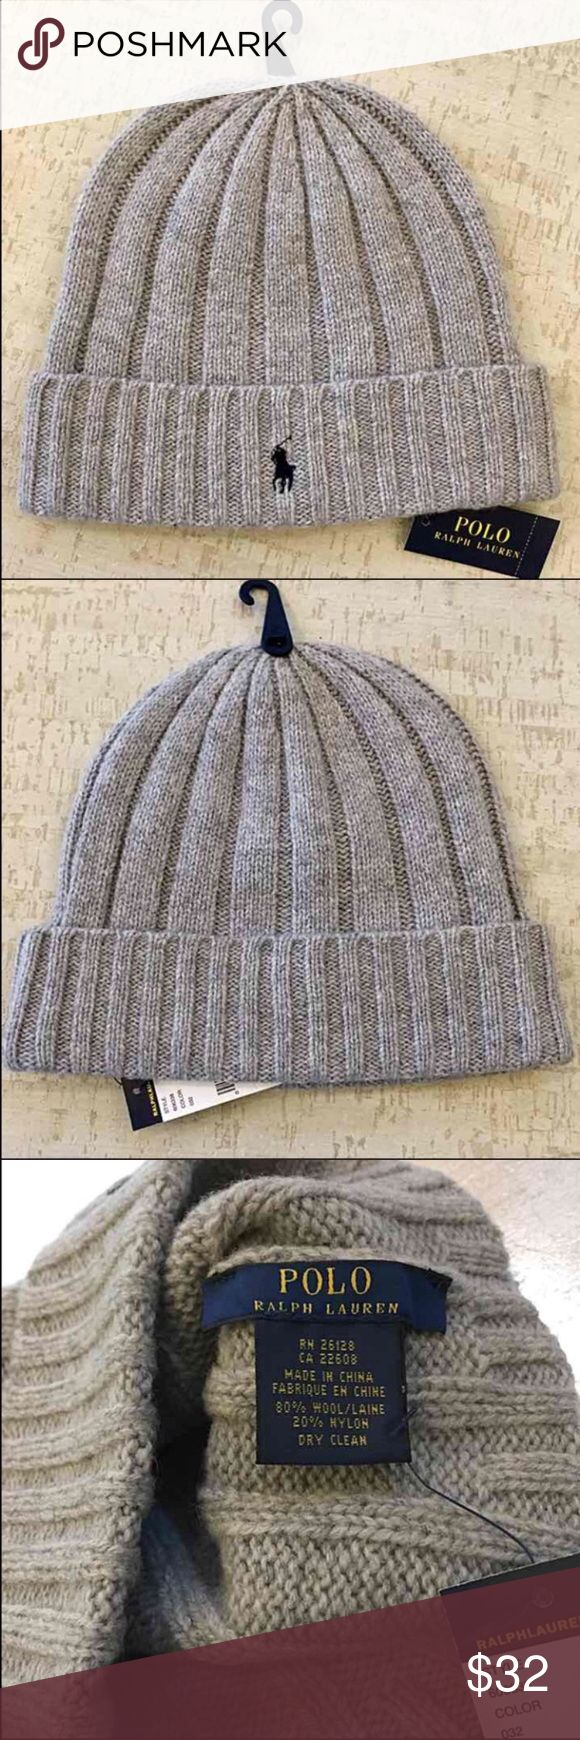 NWT - Men's POLO Beanie Authentic Ralph Lauren POLO Beanie - Light Grey with Navy Blue Polo emblem - 80% Wool, 20% Nylon *Price is Firm* Polo by Ralph Lauren Accessories Hats